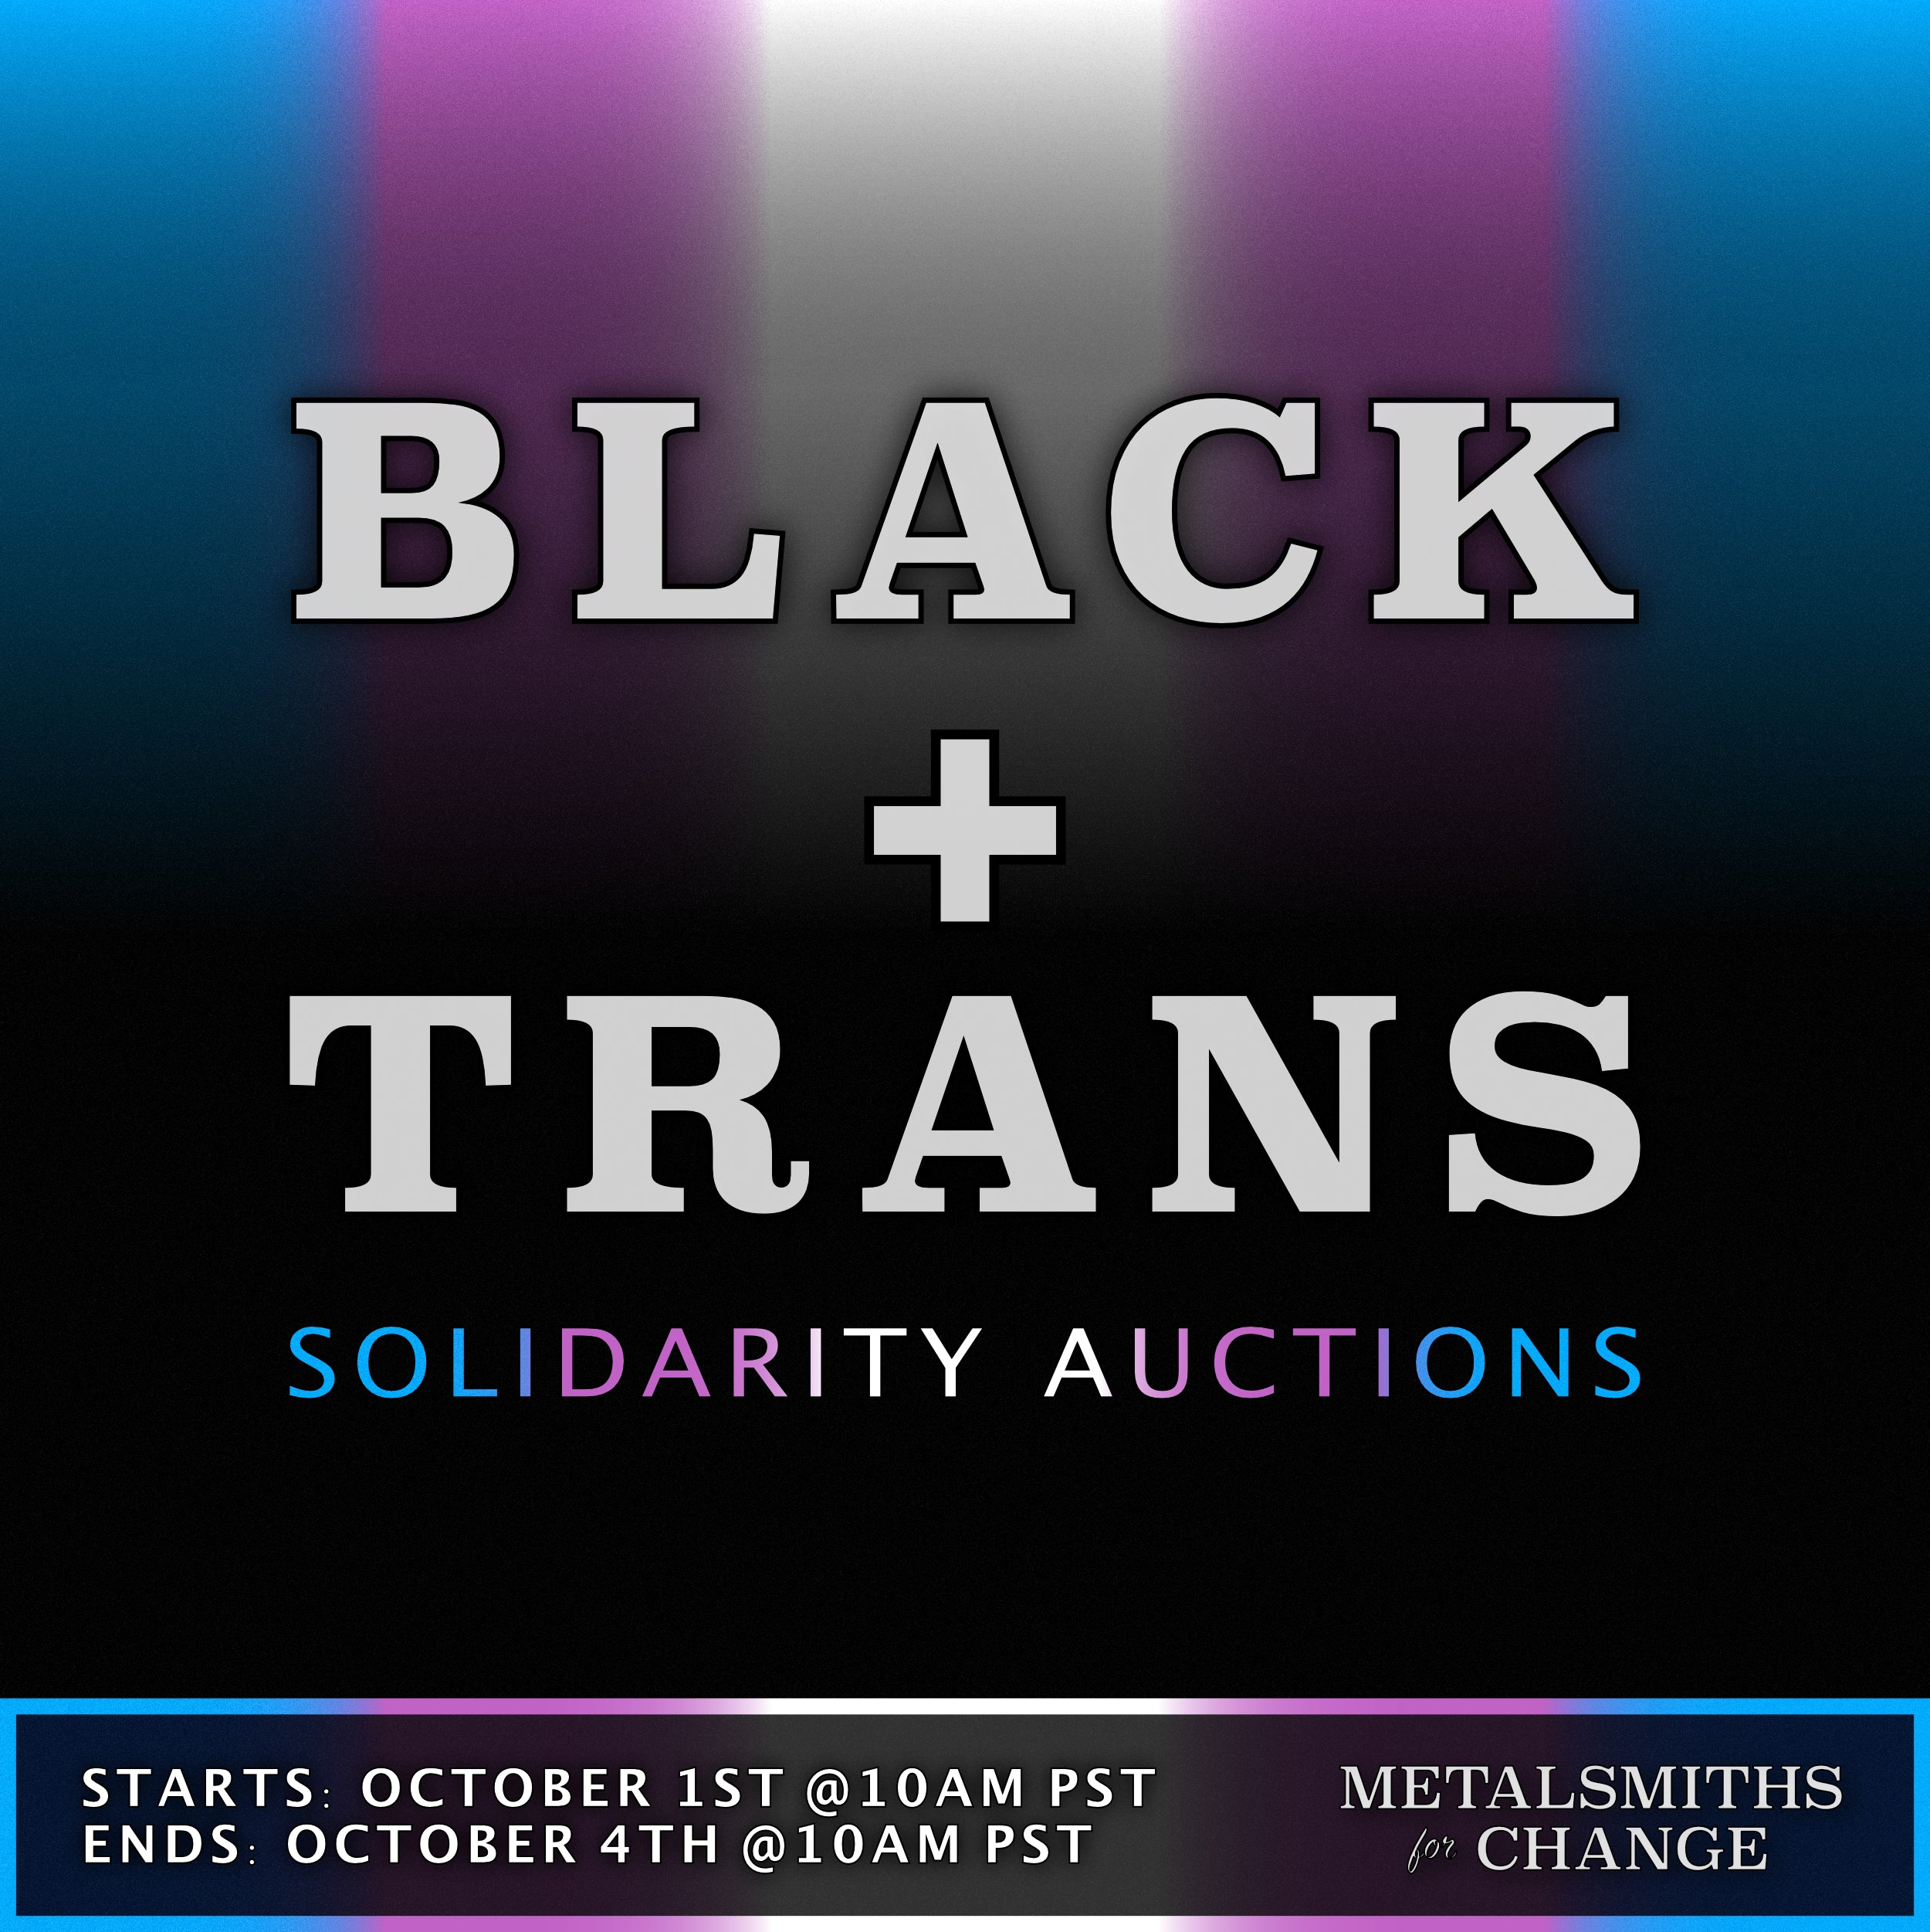 Black + Trans Solidarity Auctions at @metalsmithsforchange on Instagram starts October 1st at 10am pst and ends October 4th at 10am pst